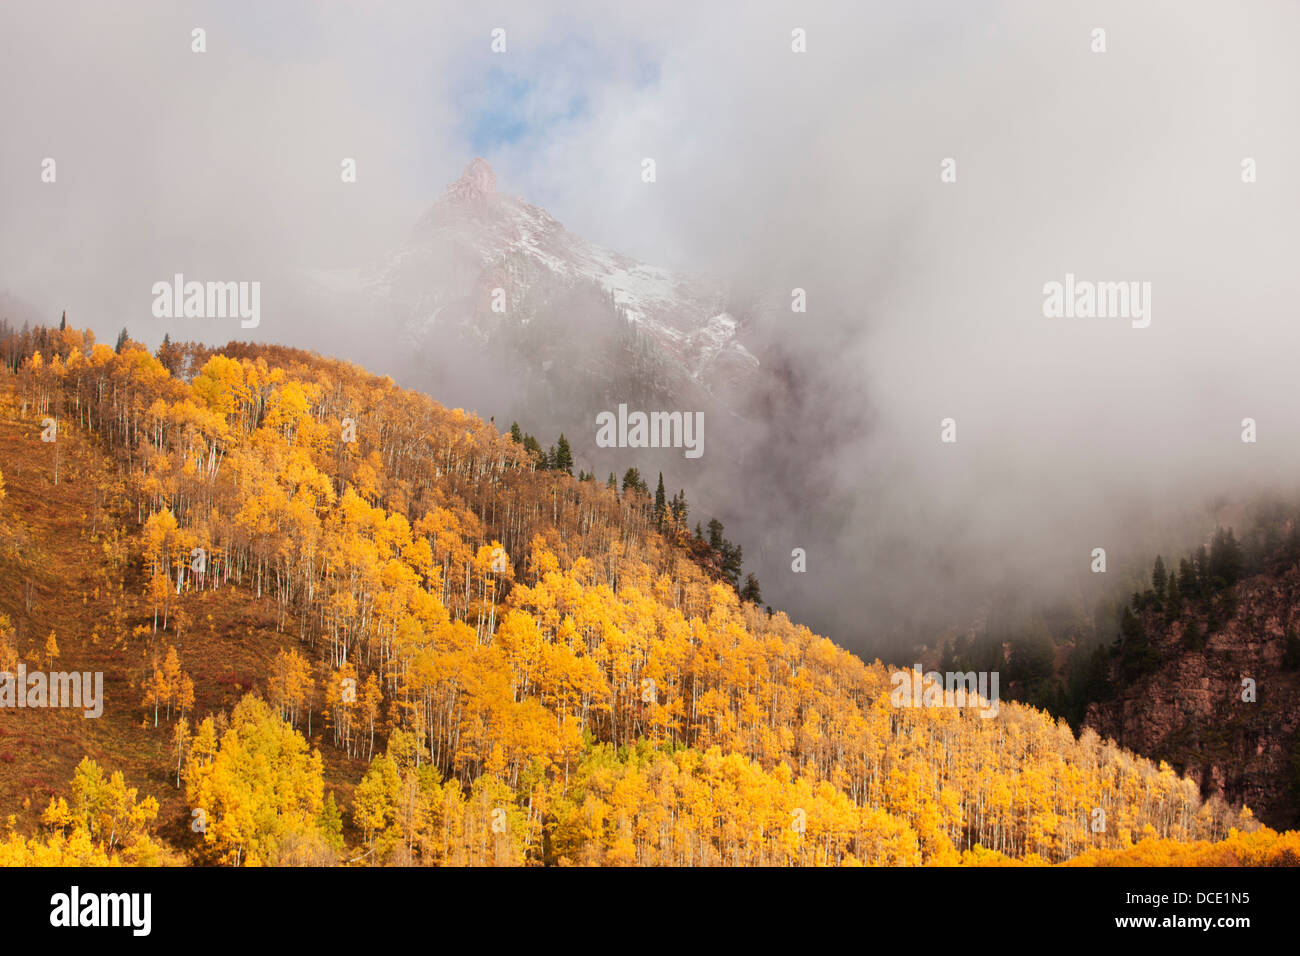 USA, Colorado, Aspen. Storm clouds among mountains in the Maroon Bells-Snowmass Wilderness Area. - Stock Image